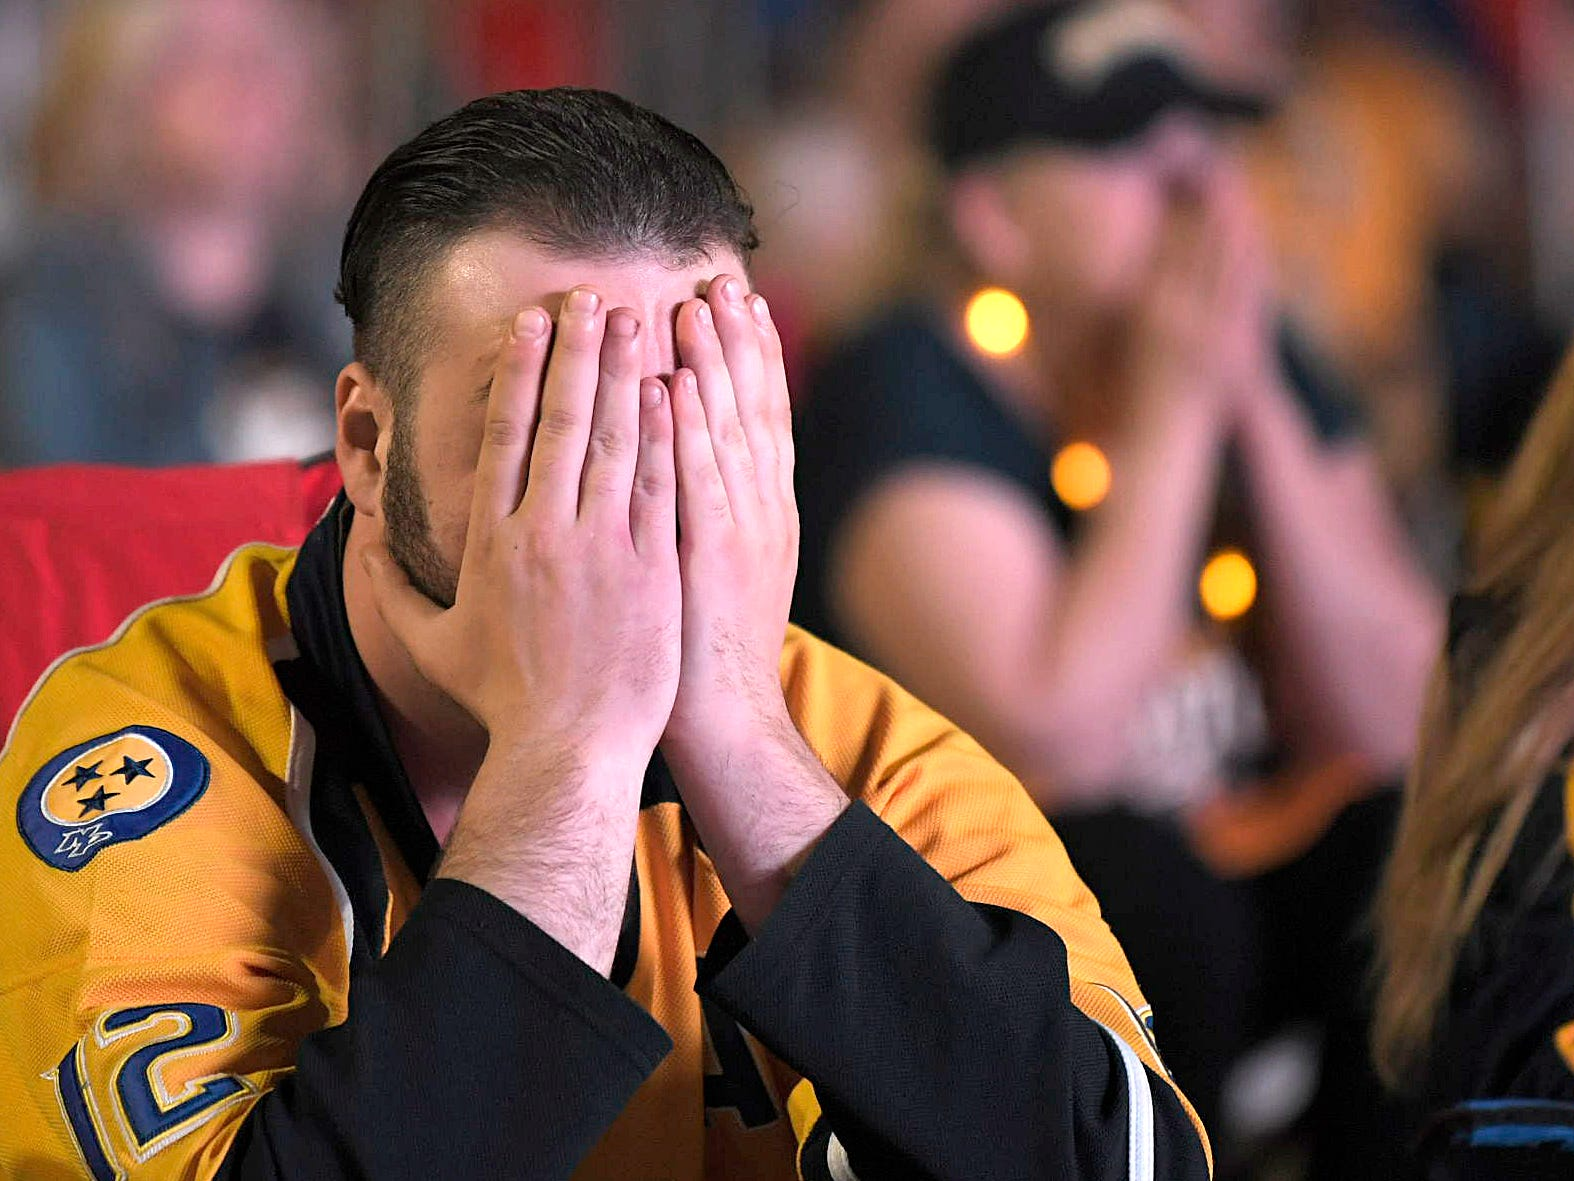 Predator fan  Zachary Kirby reacts to the hockey game against Dallas at the Preds Party in the Park at Walk of Fame Park in Nashville on Wednesday, April 10, 2019. Predators lost to Dallas 2-3.